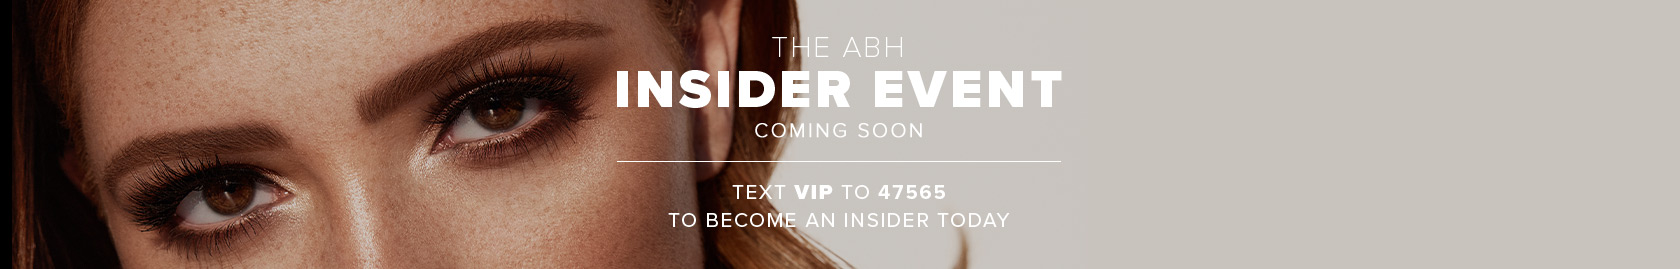 Coming Soon - VIP Insider Event Text VIP to 47565